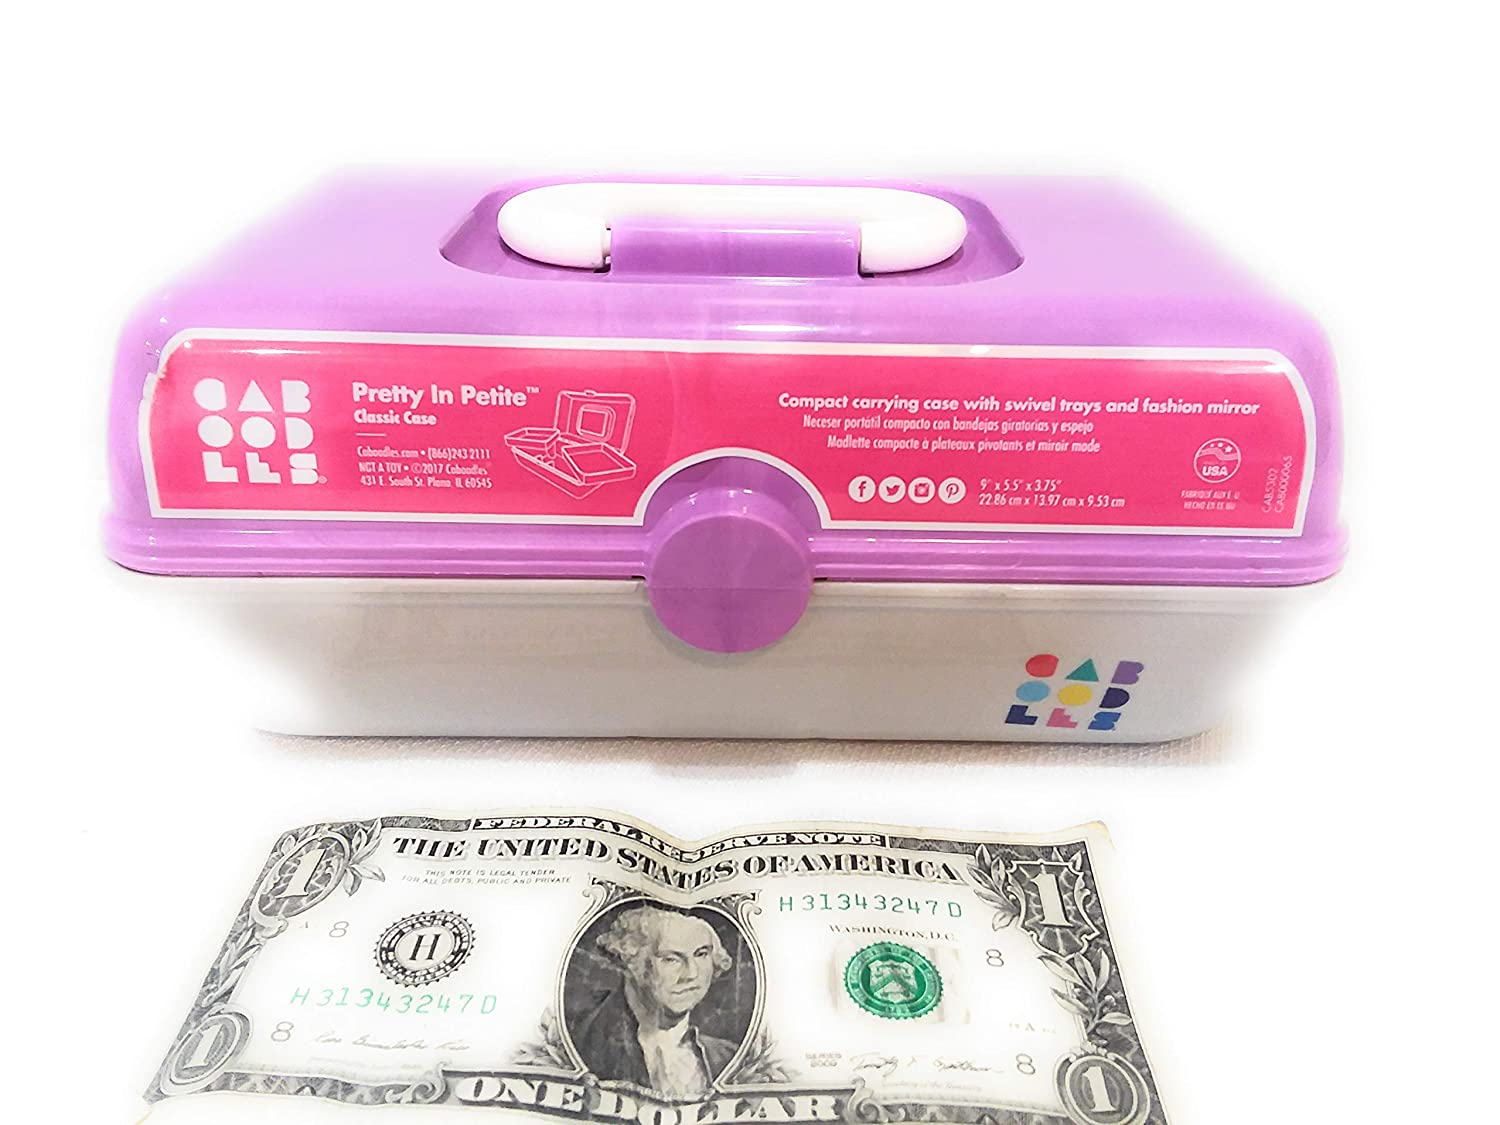 Amazon.com : Small Caboodles Makeup Cosmetic Case Pretty In Petite Girls (pink/aqua) : Beauty